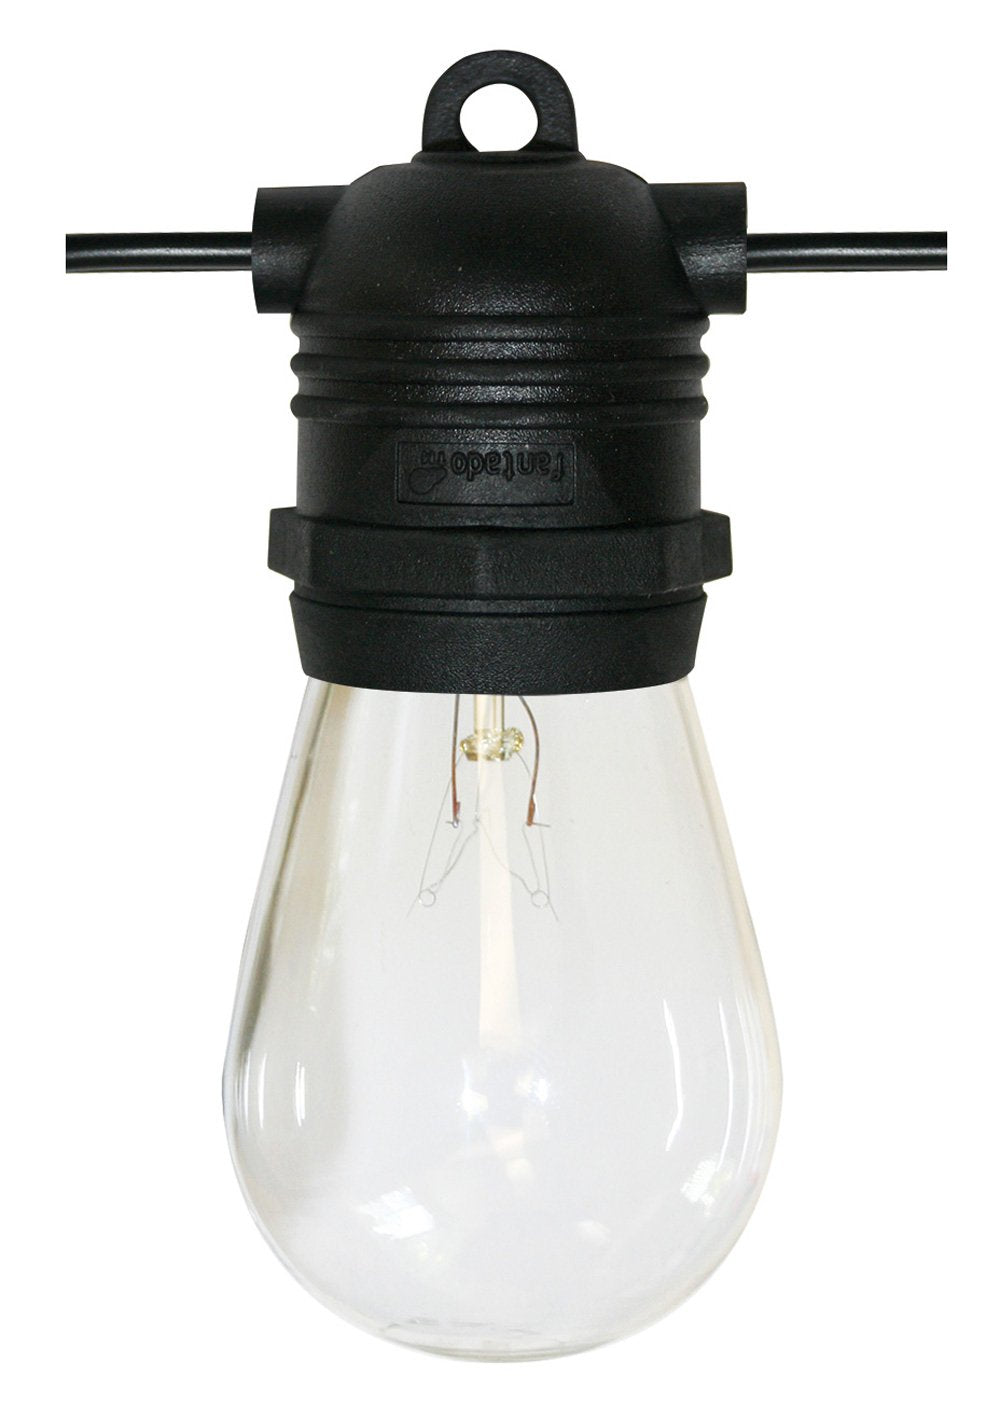 10 Socket Outdoor Commercial String Light Set, S14 Bulbs, 21 FT Black Cord w/ E26 Medium Base, Weatherproof SJTW - PaperLanternStore.com - Paper Lanterns, Decor, Party Lights & More